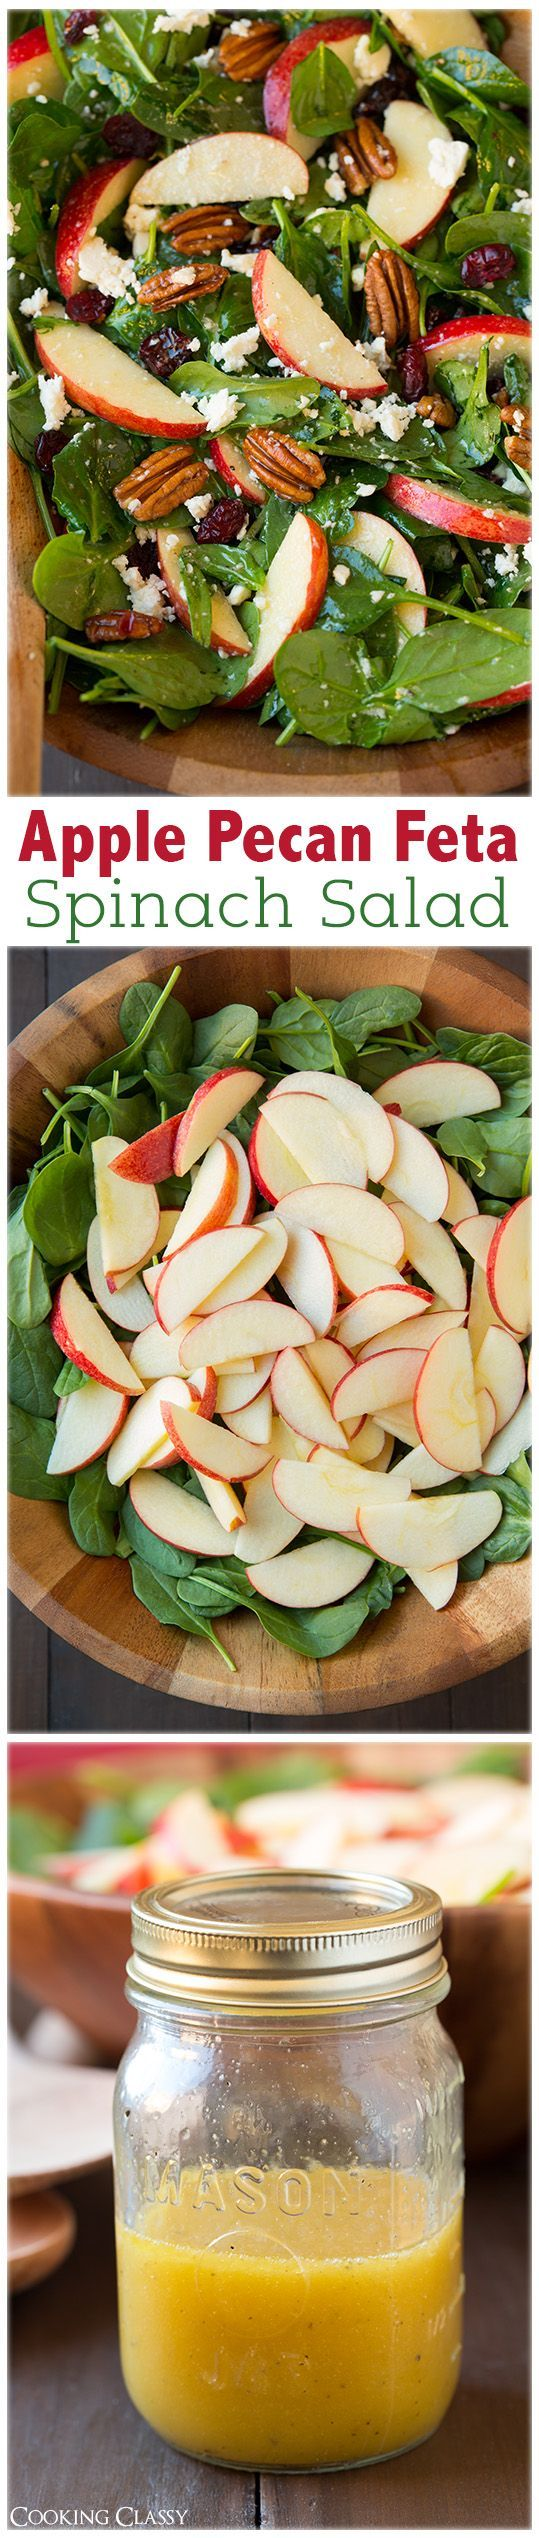 Apple Pecan Feta Spinach Salad with Maple Cider Vinaigrette - this salad is a must try recipe! Highly recommend adding the bacon too.